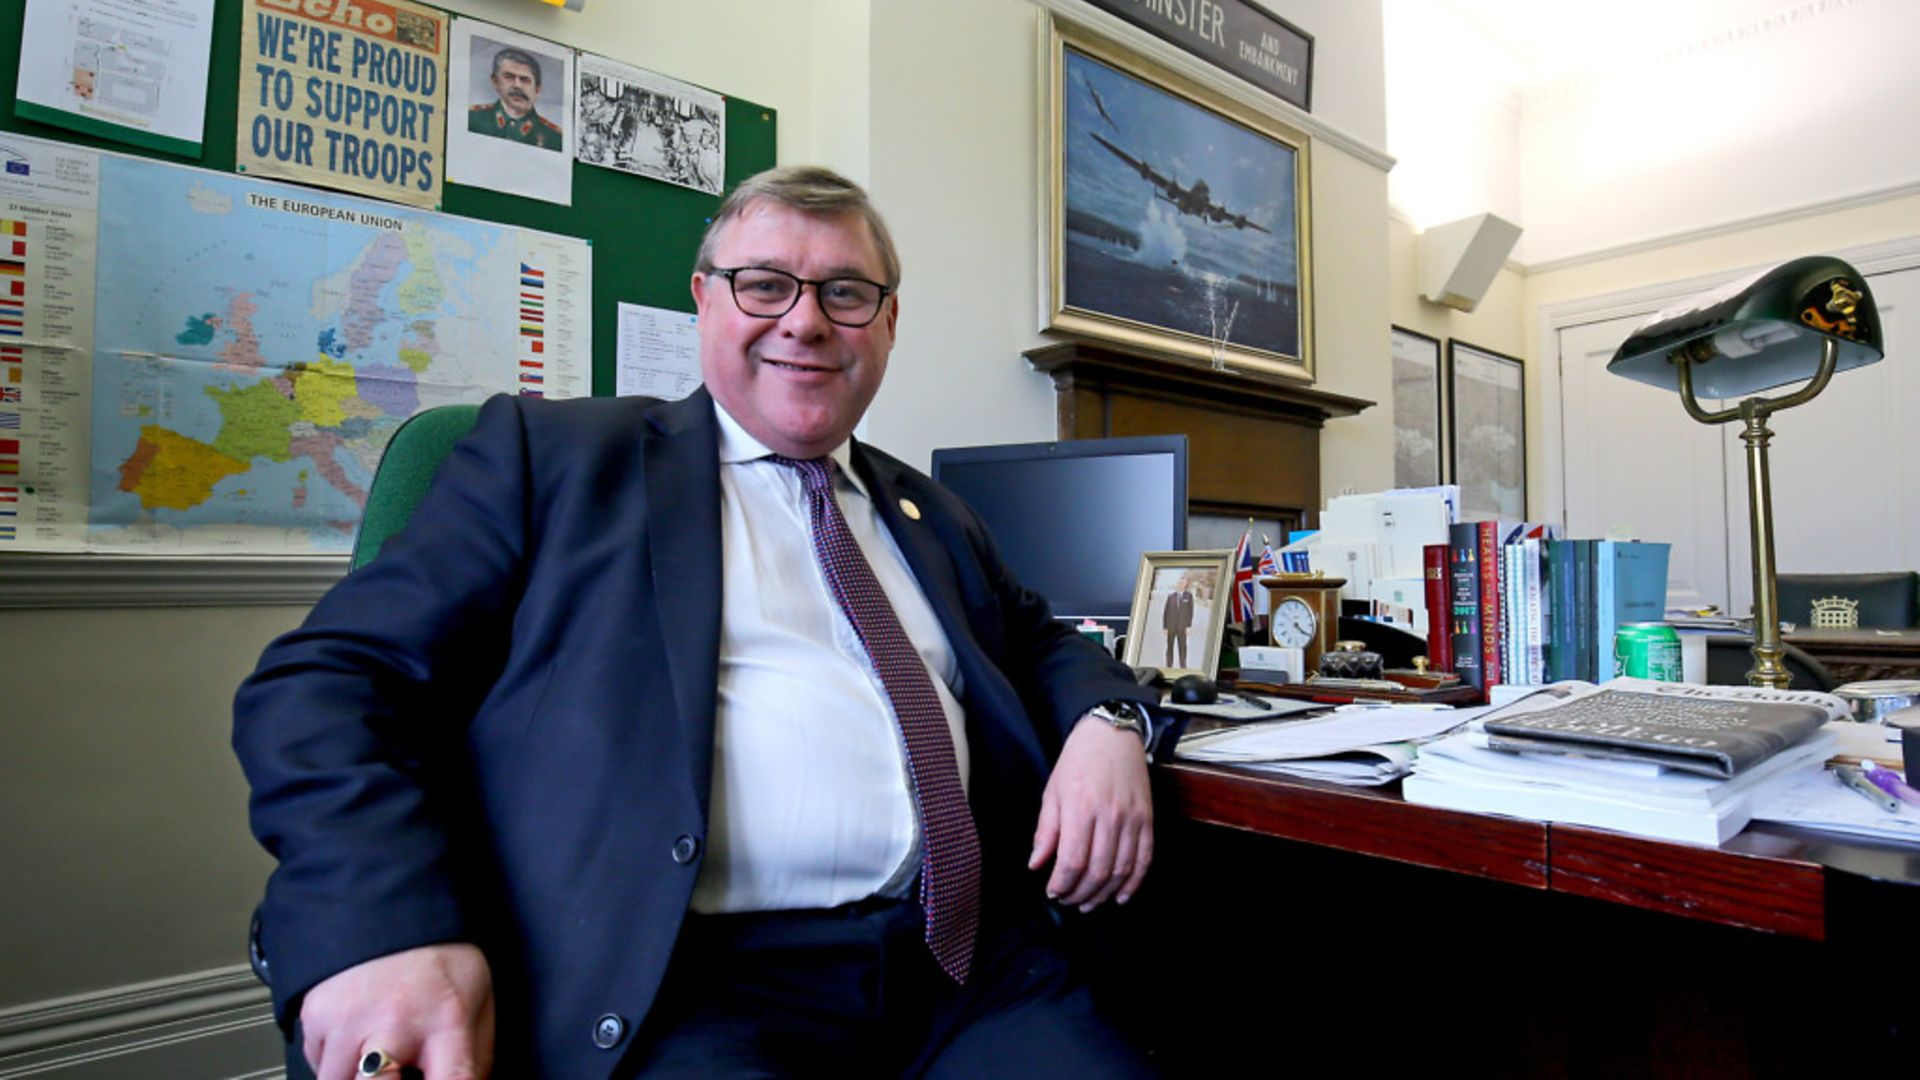 Mark Francois speaking in his office in the Houses of Parliament. - Credit: PA Archive/PA Images